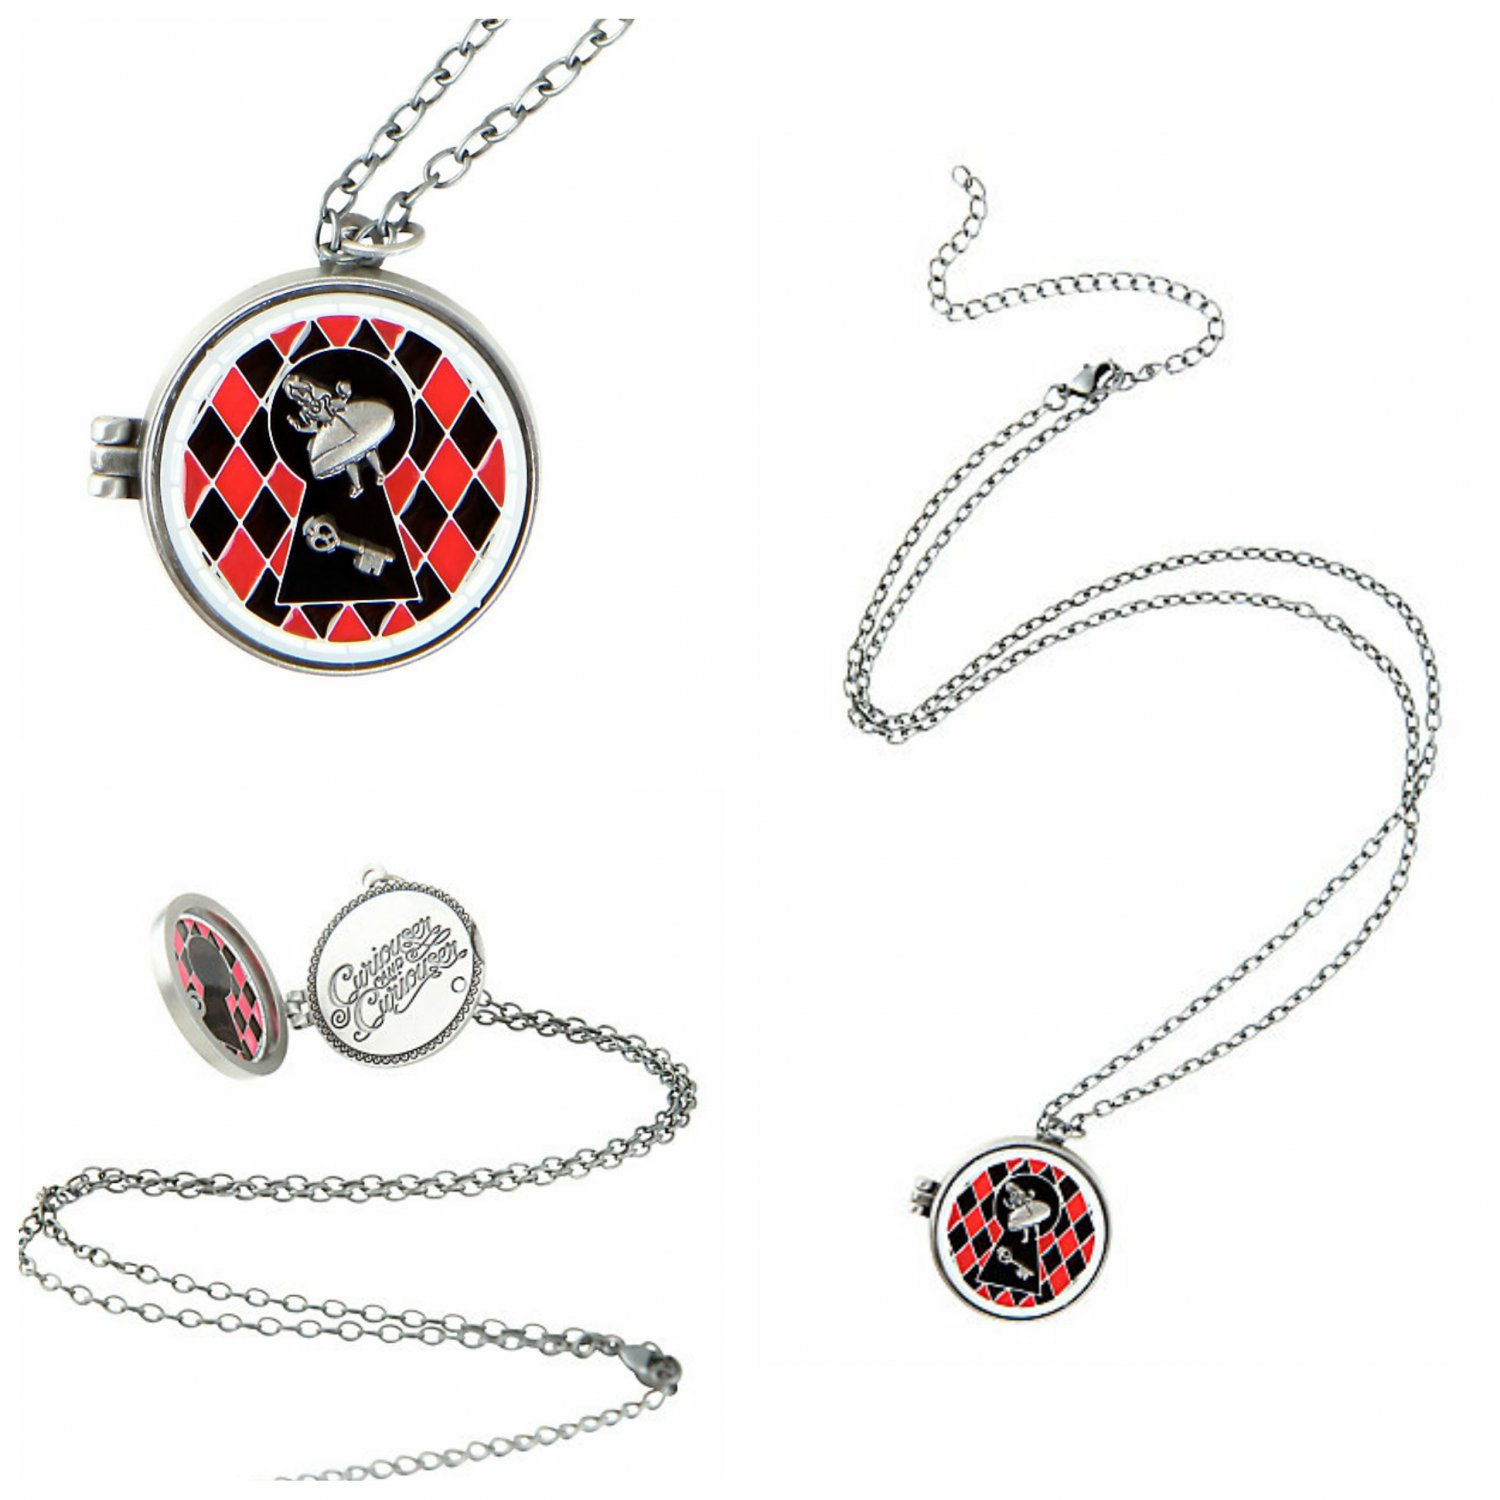 Disney Alice In Wonderland Curiouser & Curiouser Stained Glass Locket Charm Pendant Necklace